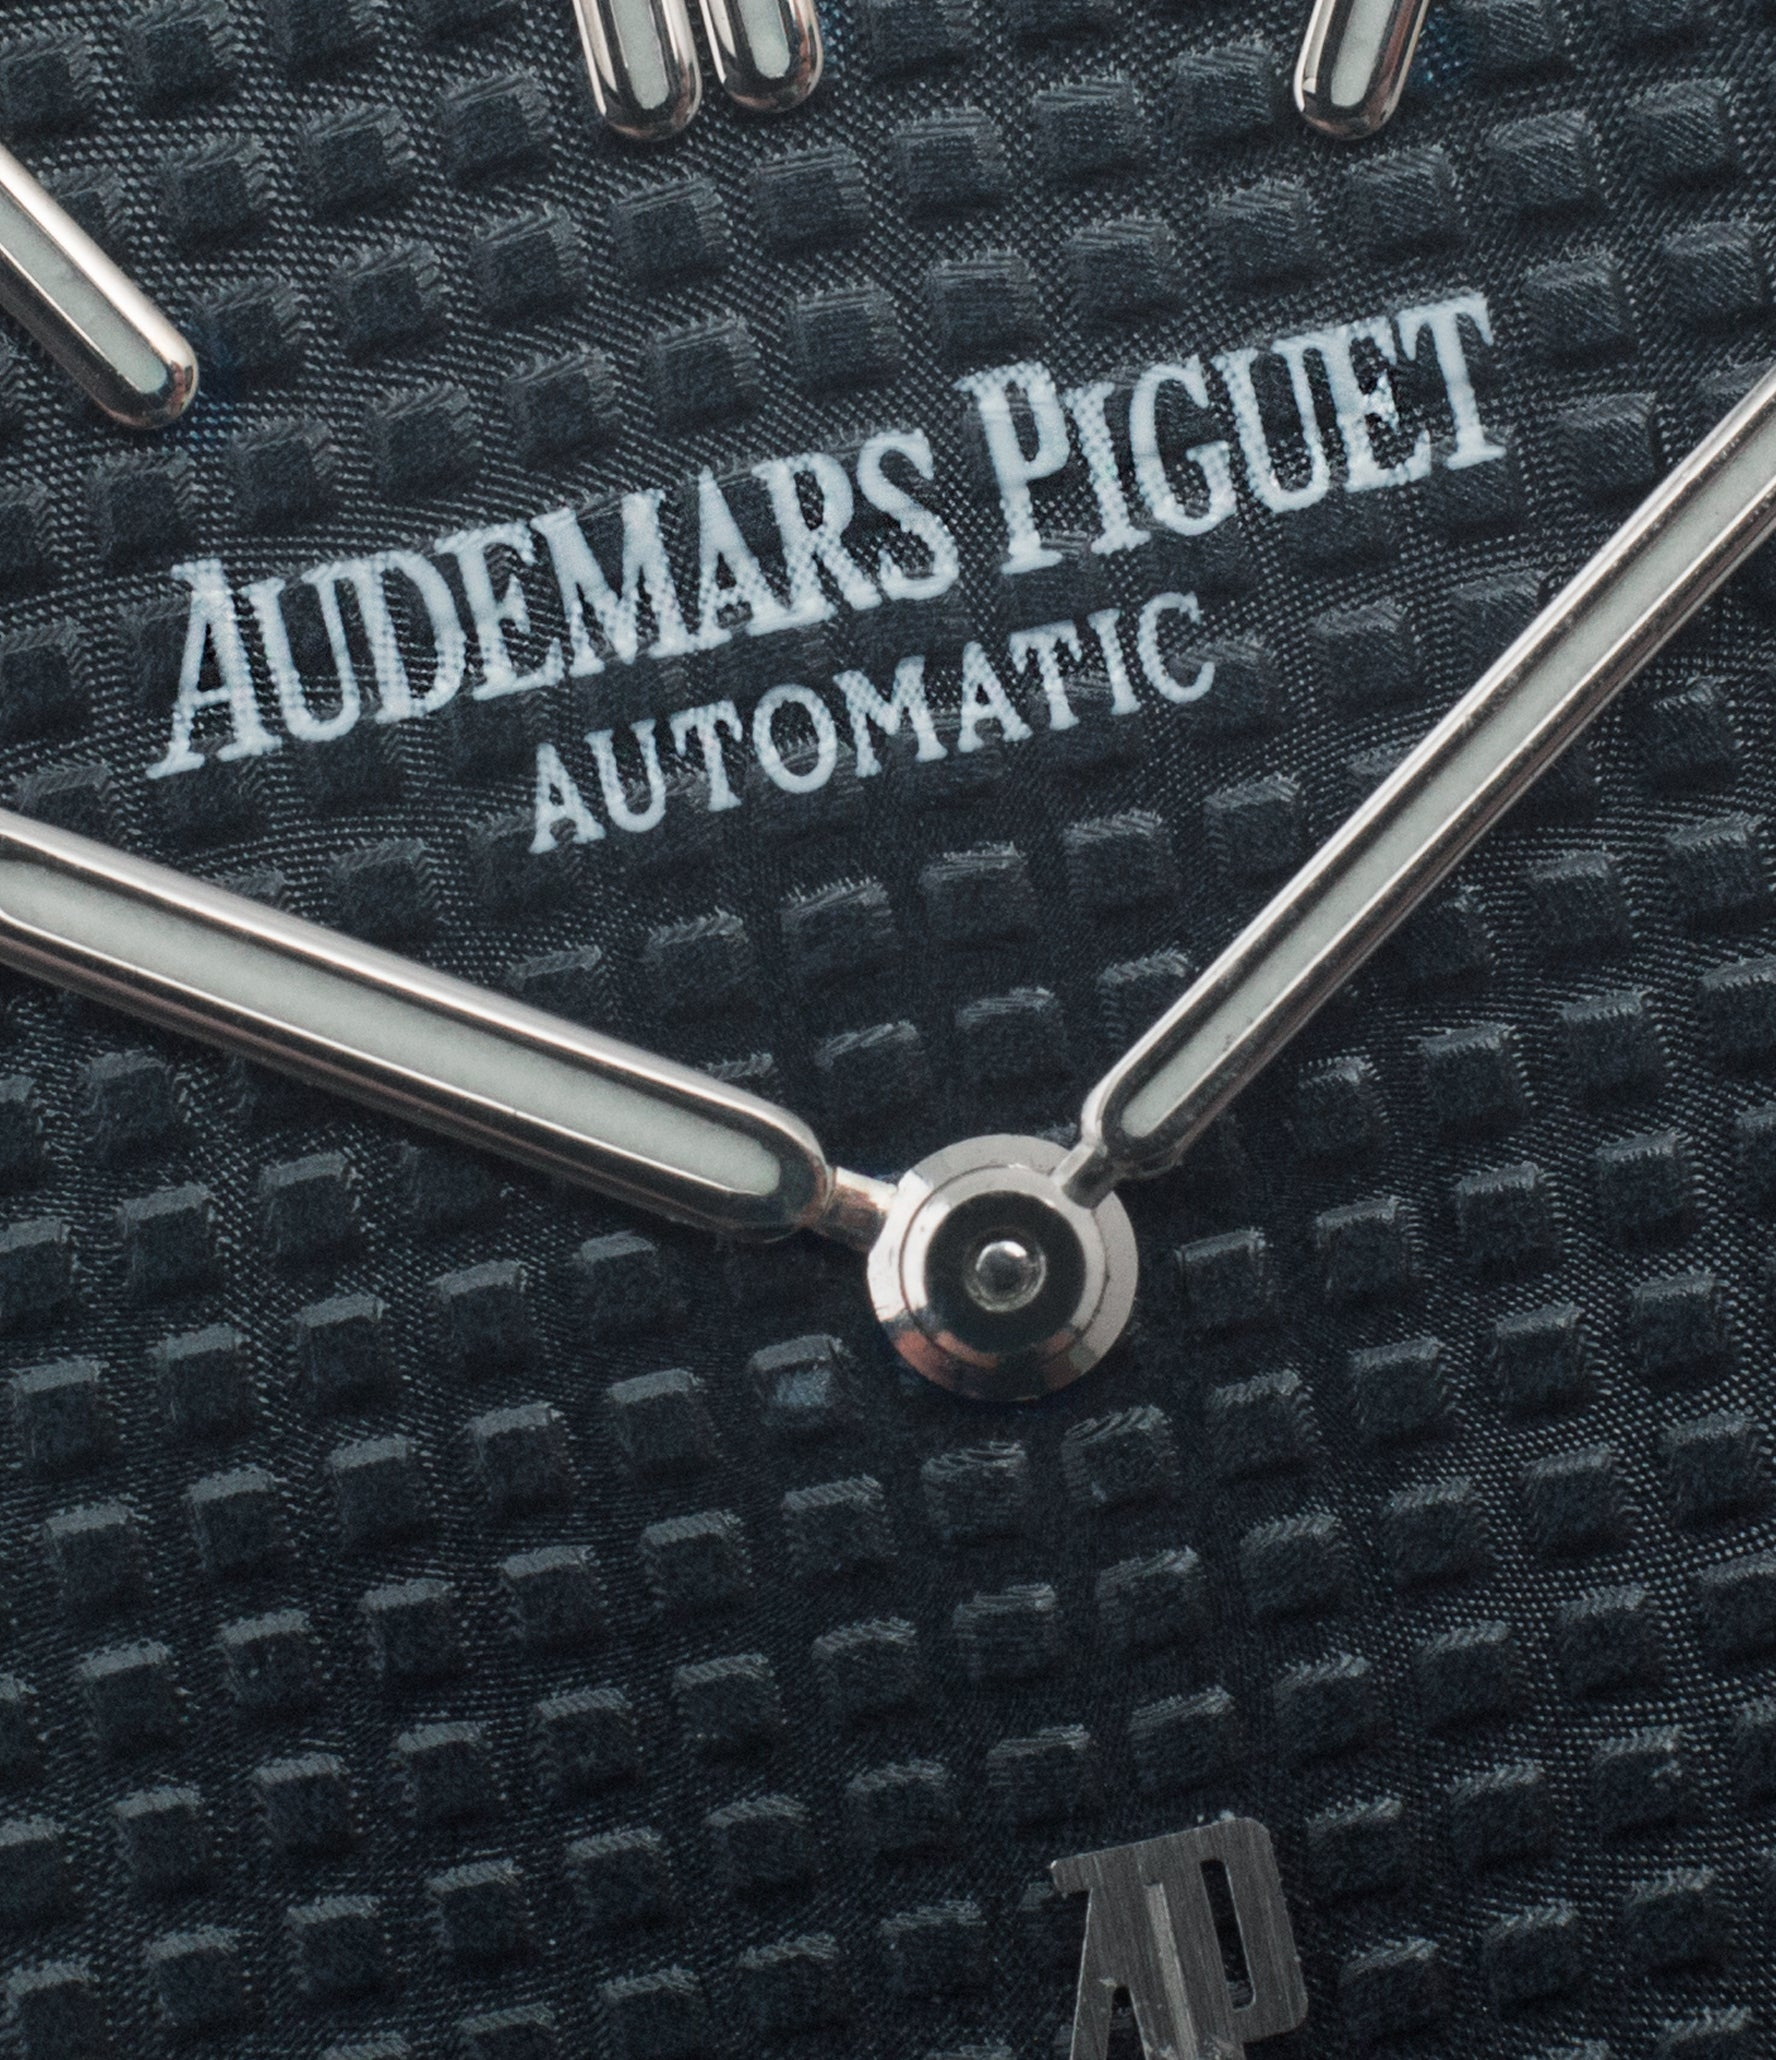 rare service dial vintage Audemars Piguet 5402 Royal Oak A series steel rare sport watch online at A Collected Man London UK vintage watch specialist